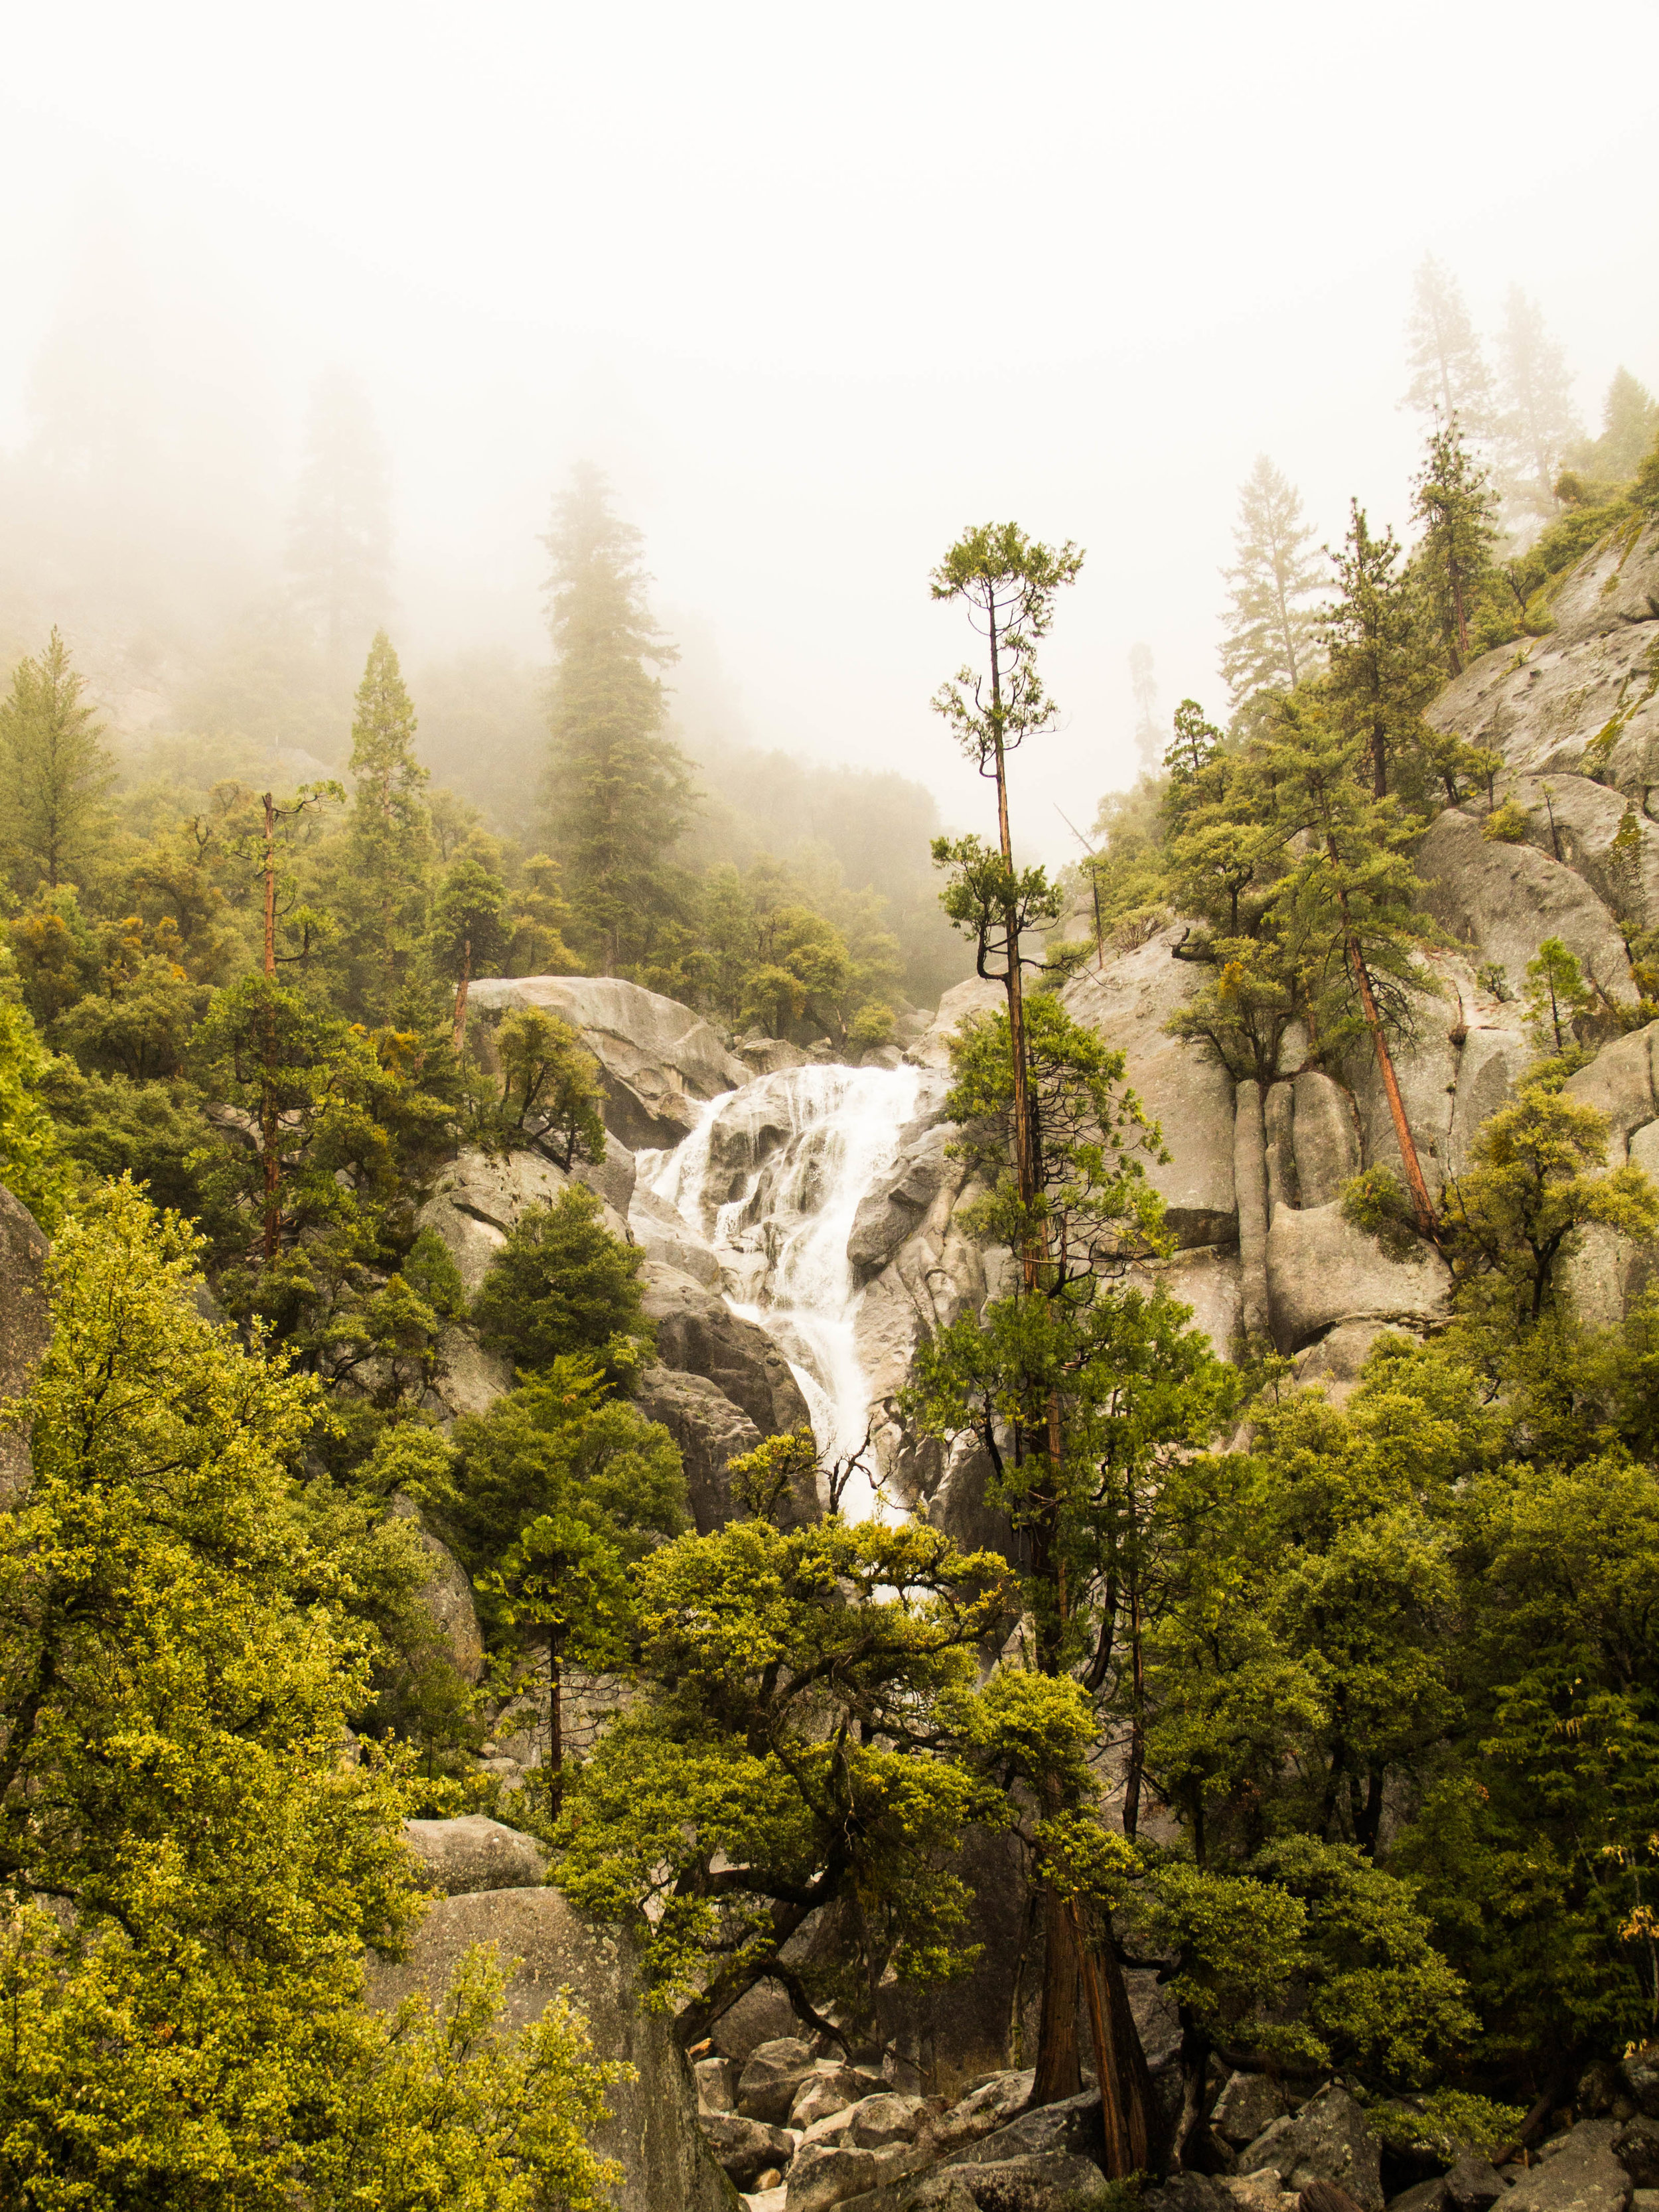 Foggy day in Yosemite in the winter months with beautiful green trees and landscaping